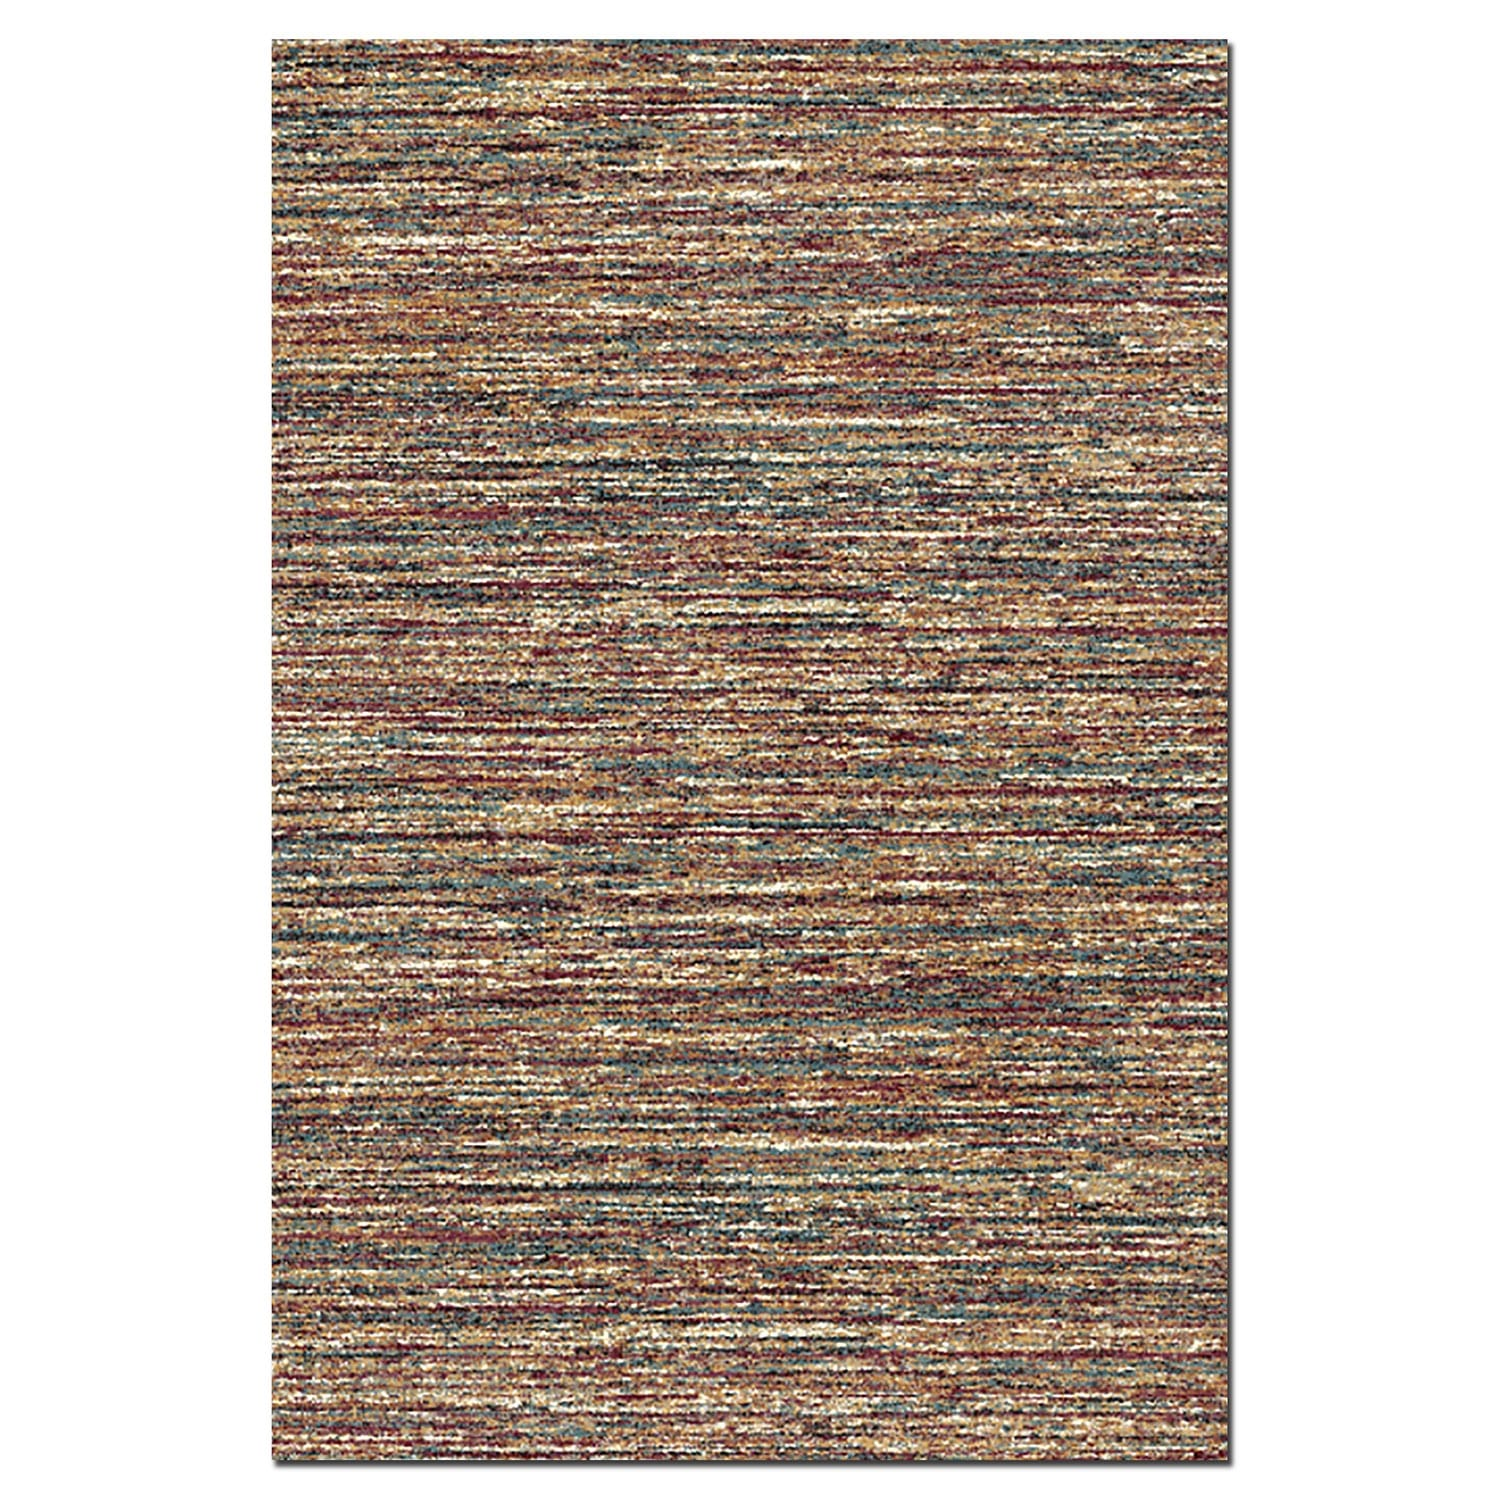 Rugs - Granada Red Area Rug (5' x 8')